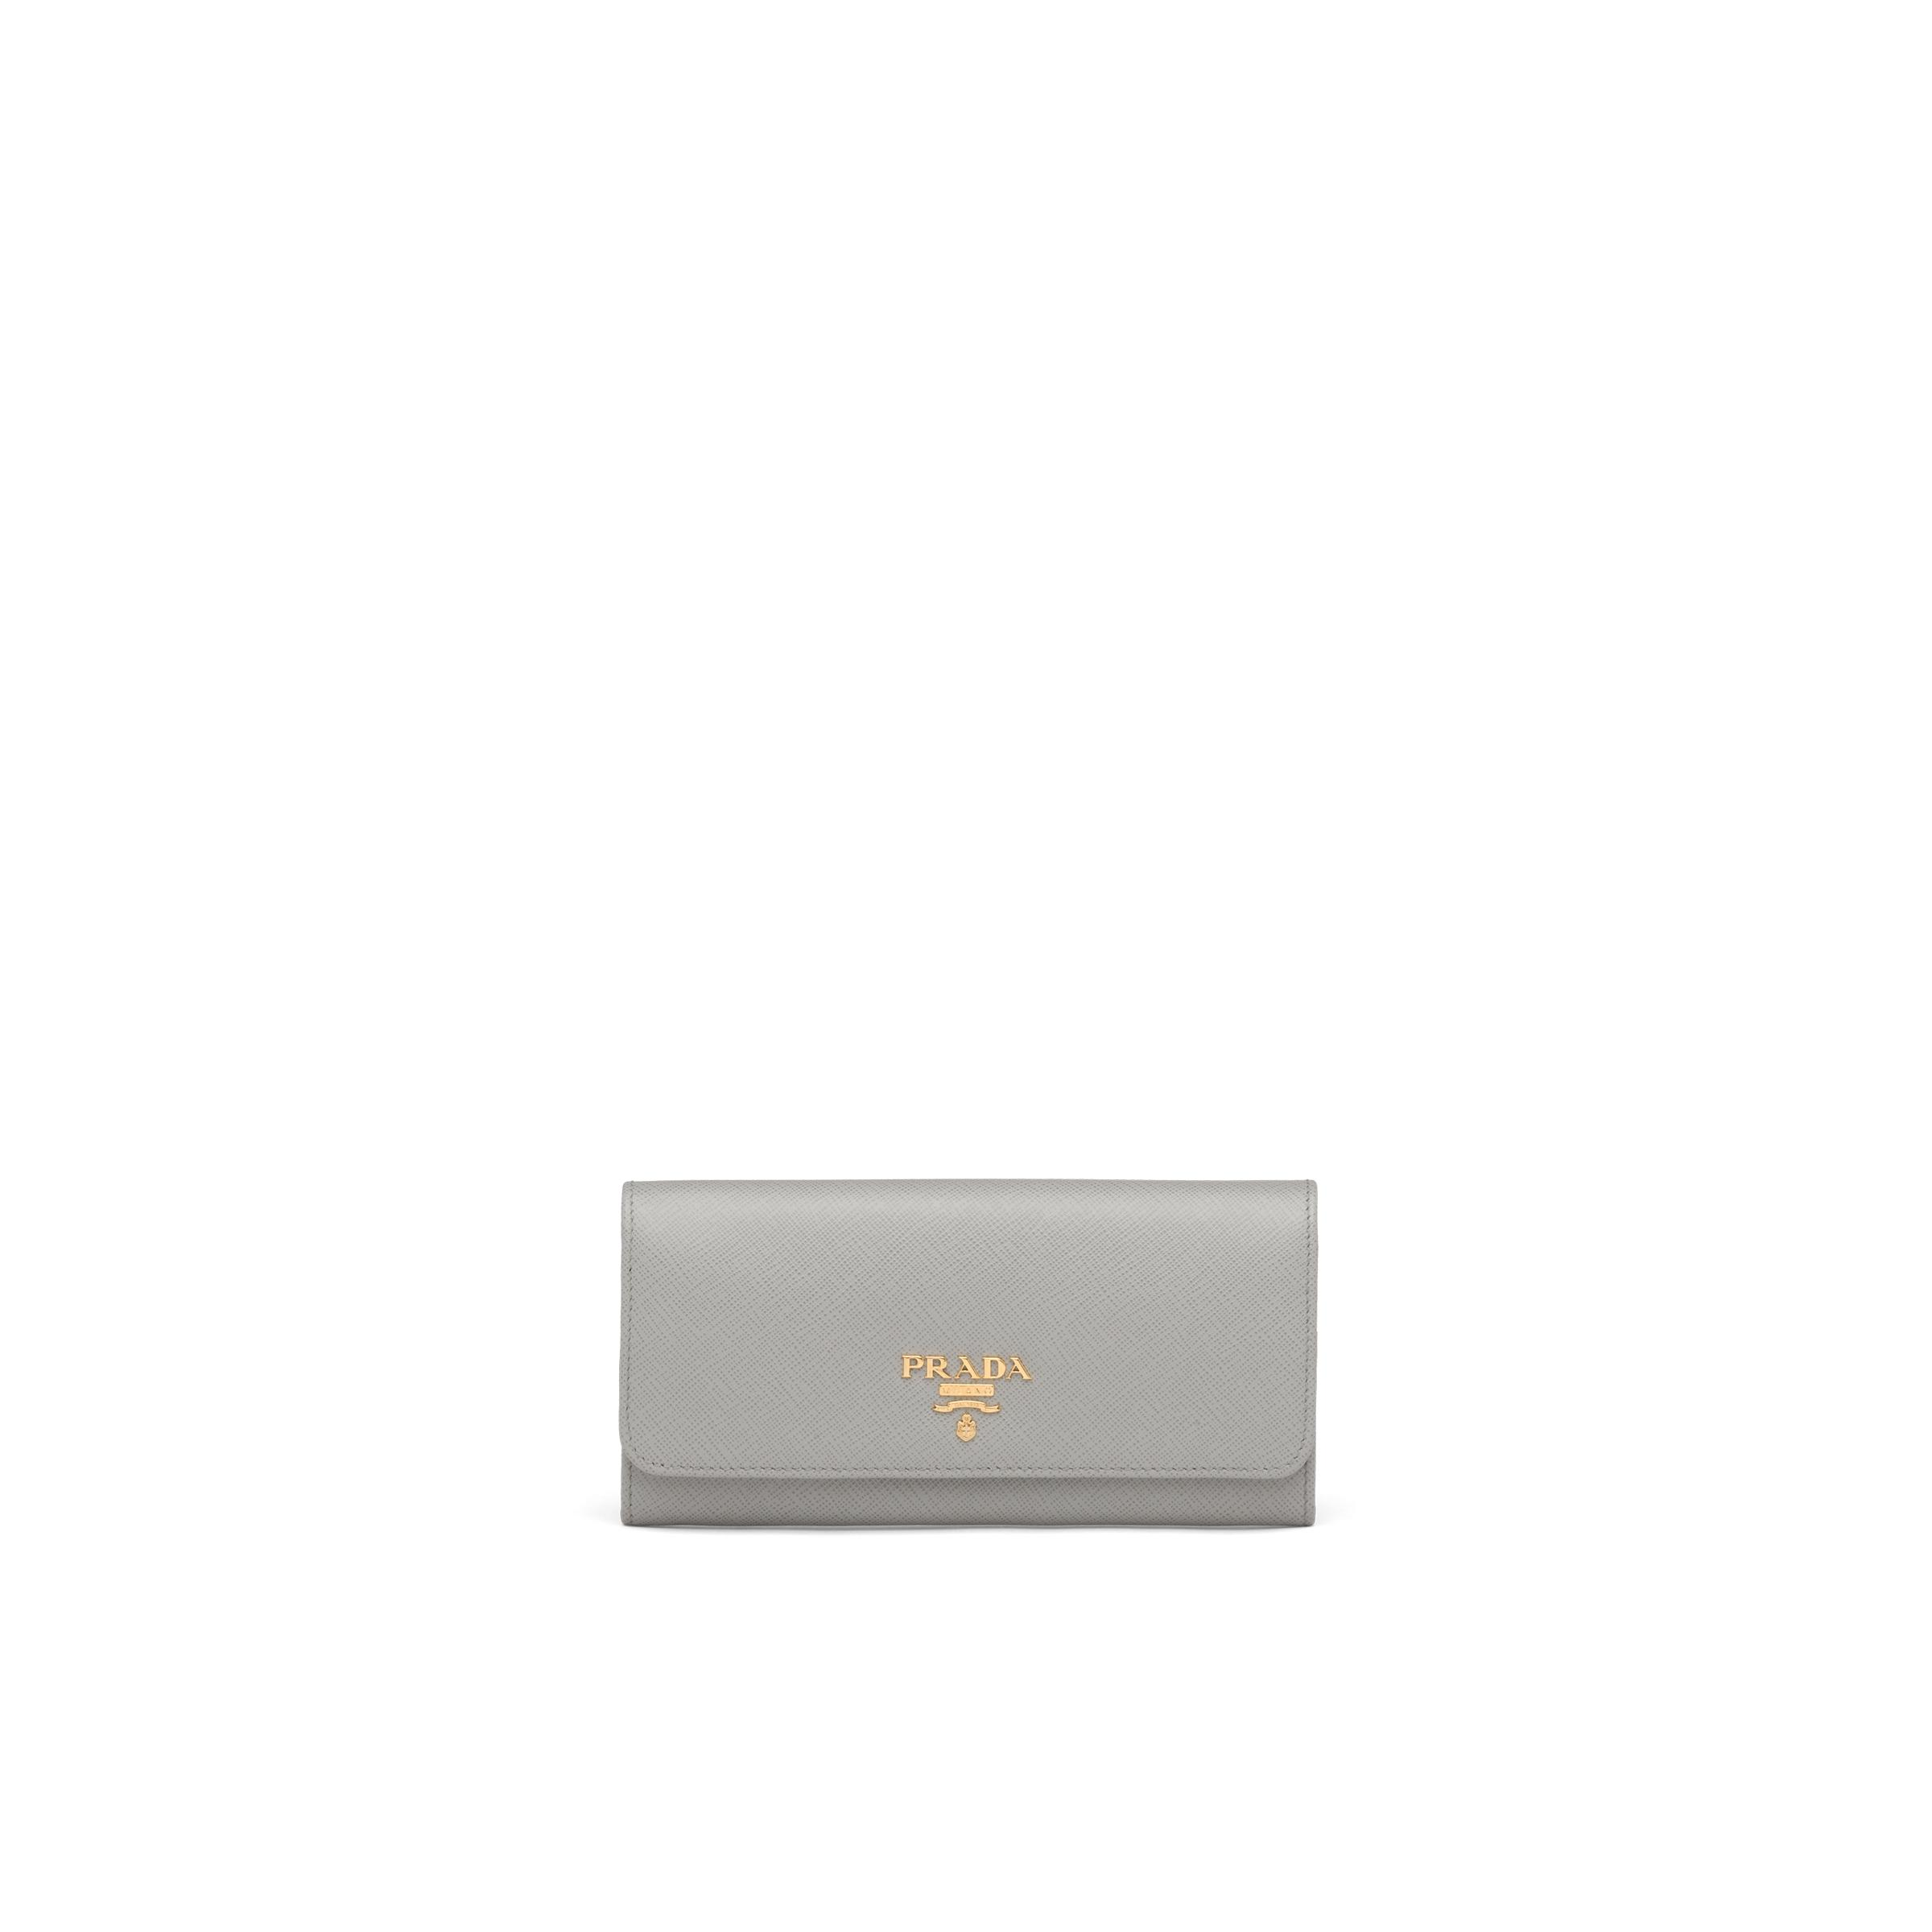 Large Saffiano Leather Wallet Women Cloudy Gray/marble Gray 0